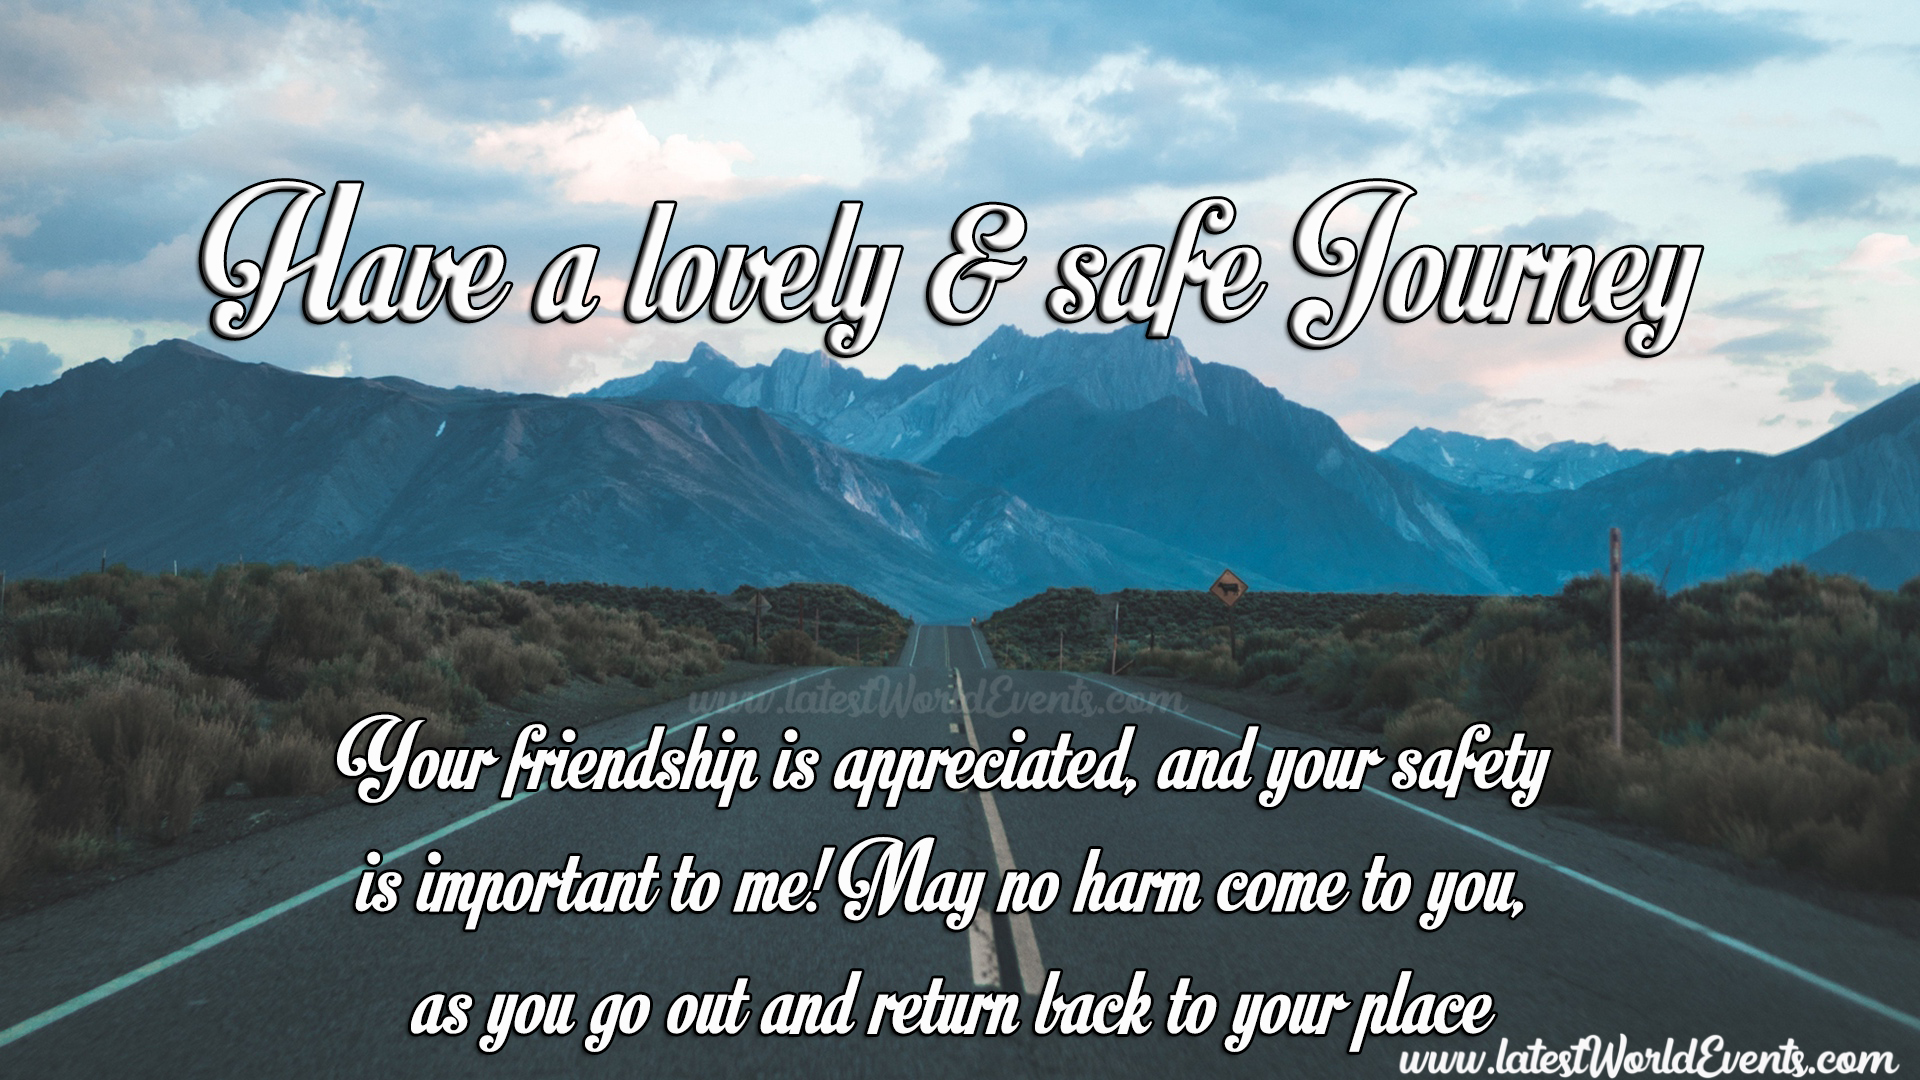 safe journey picture messages latest world events